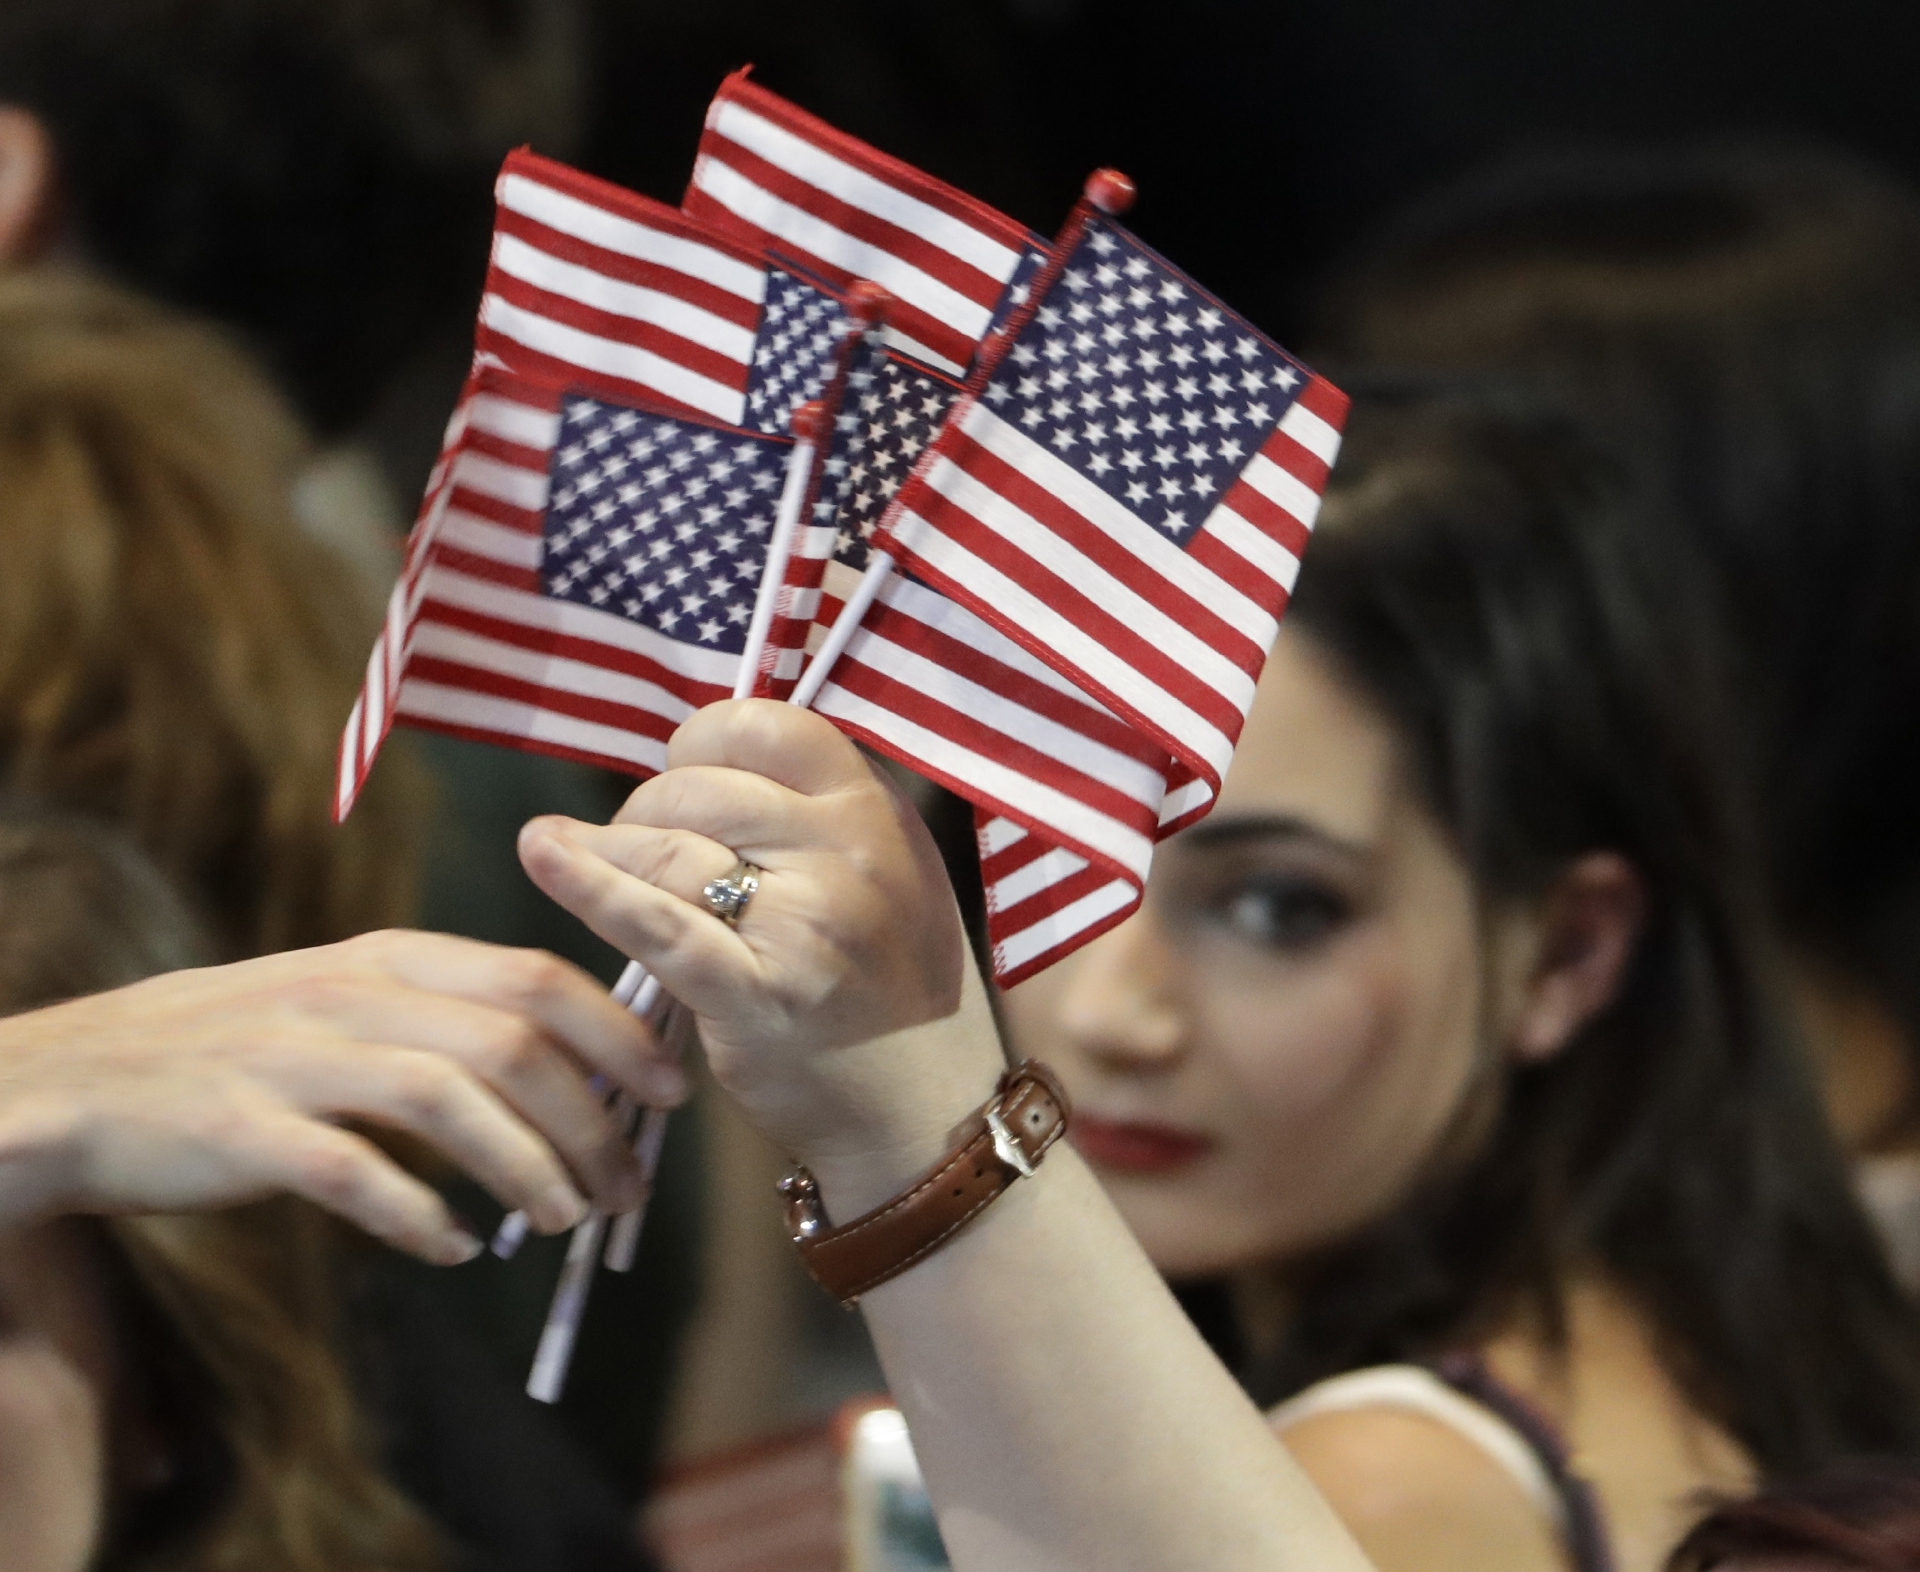 American flags are handed out at a rally.